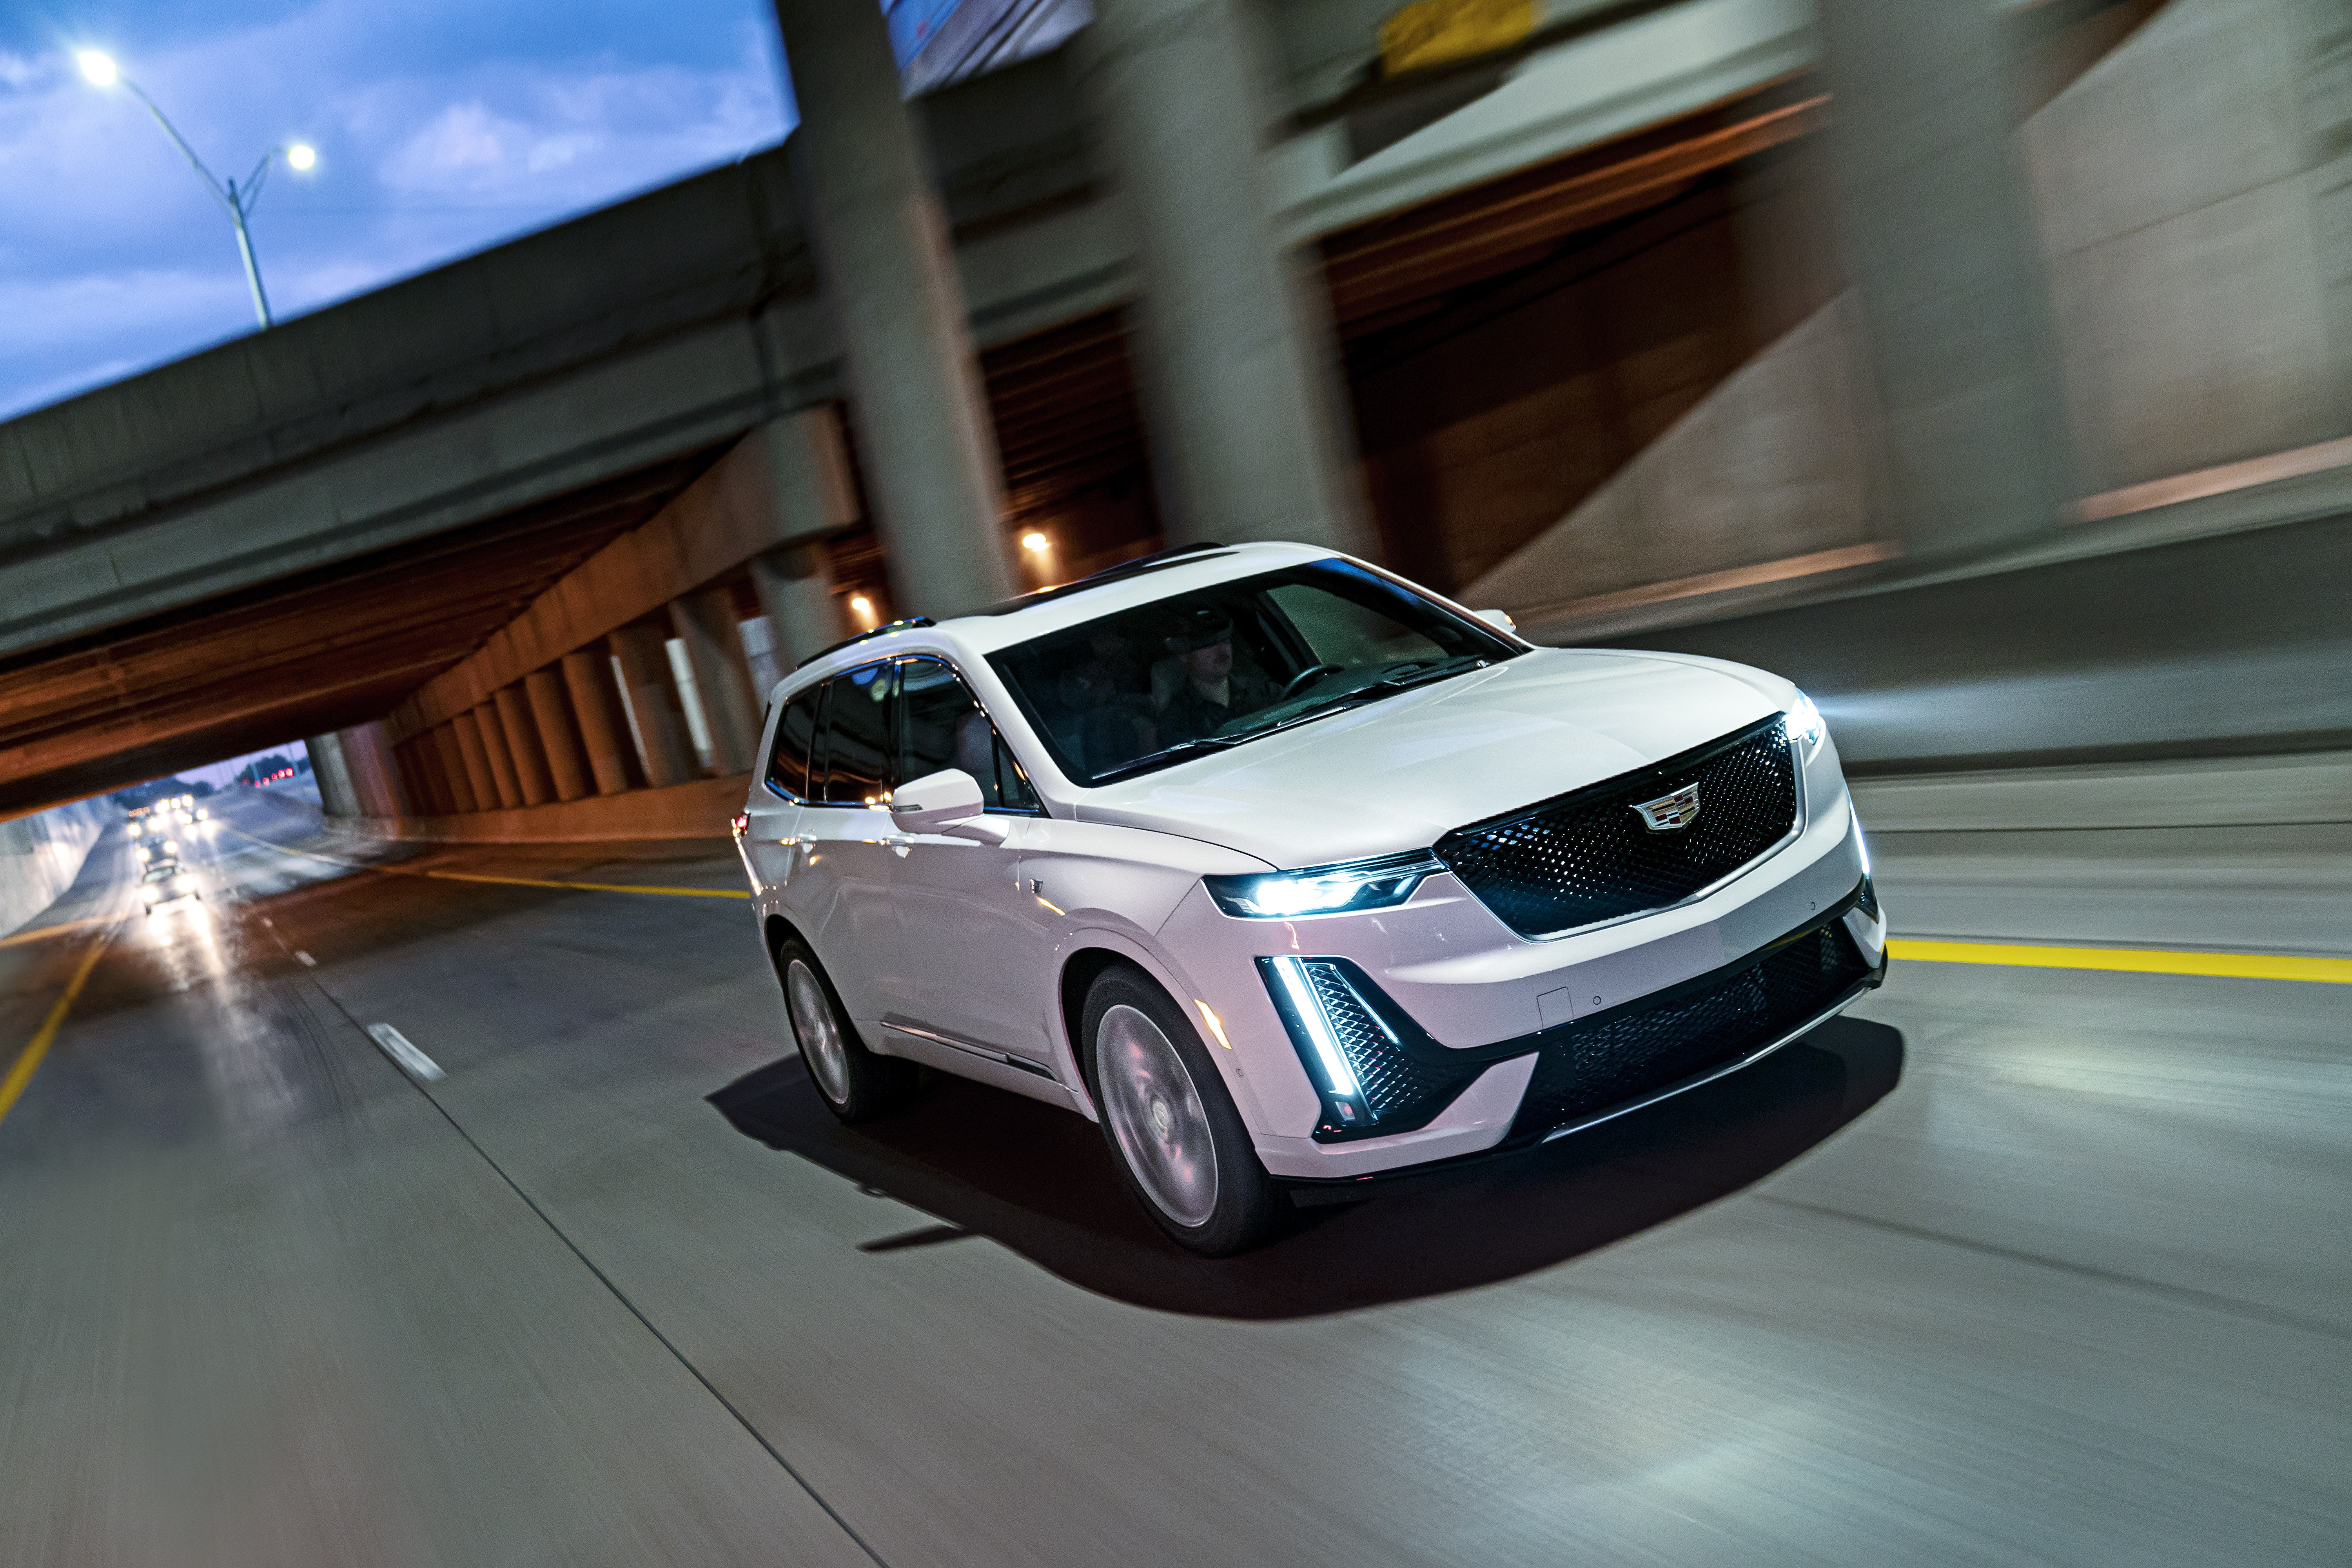 Comments On Three Row 2020 Cadillac Xt6 Is A Luxury Suv Built From Mainstream Hardware Car And Driver Backfires